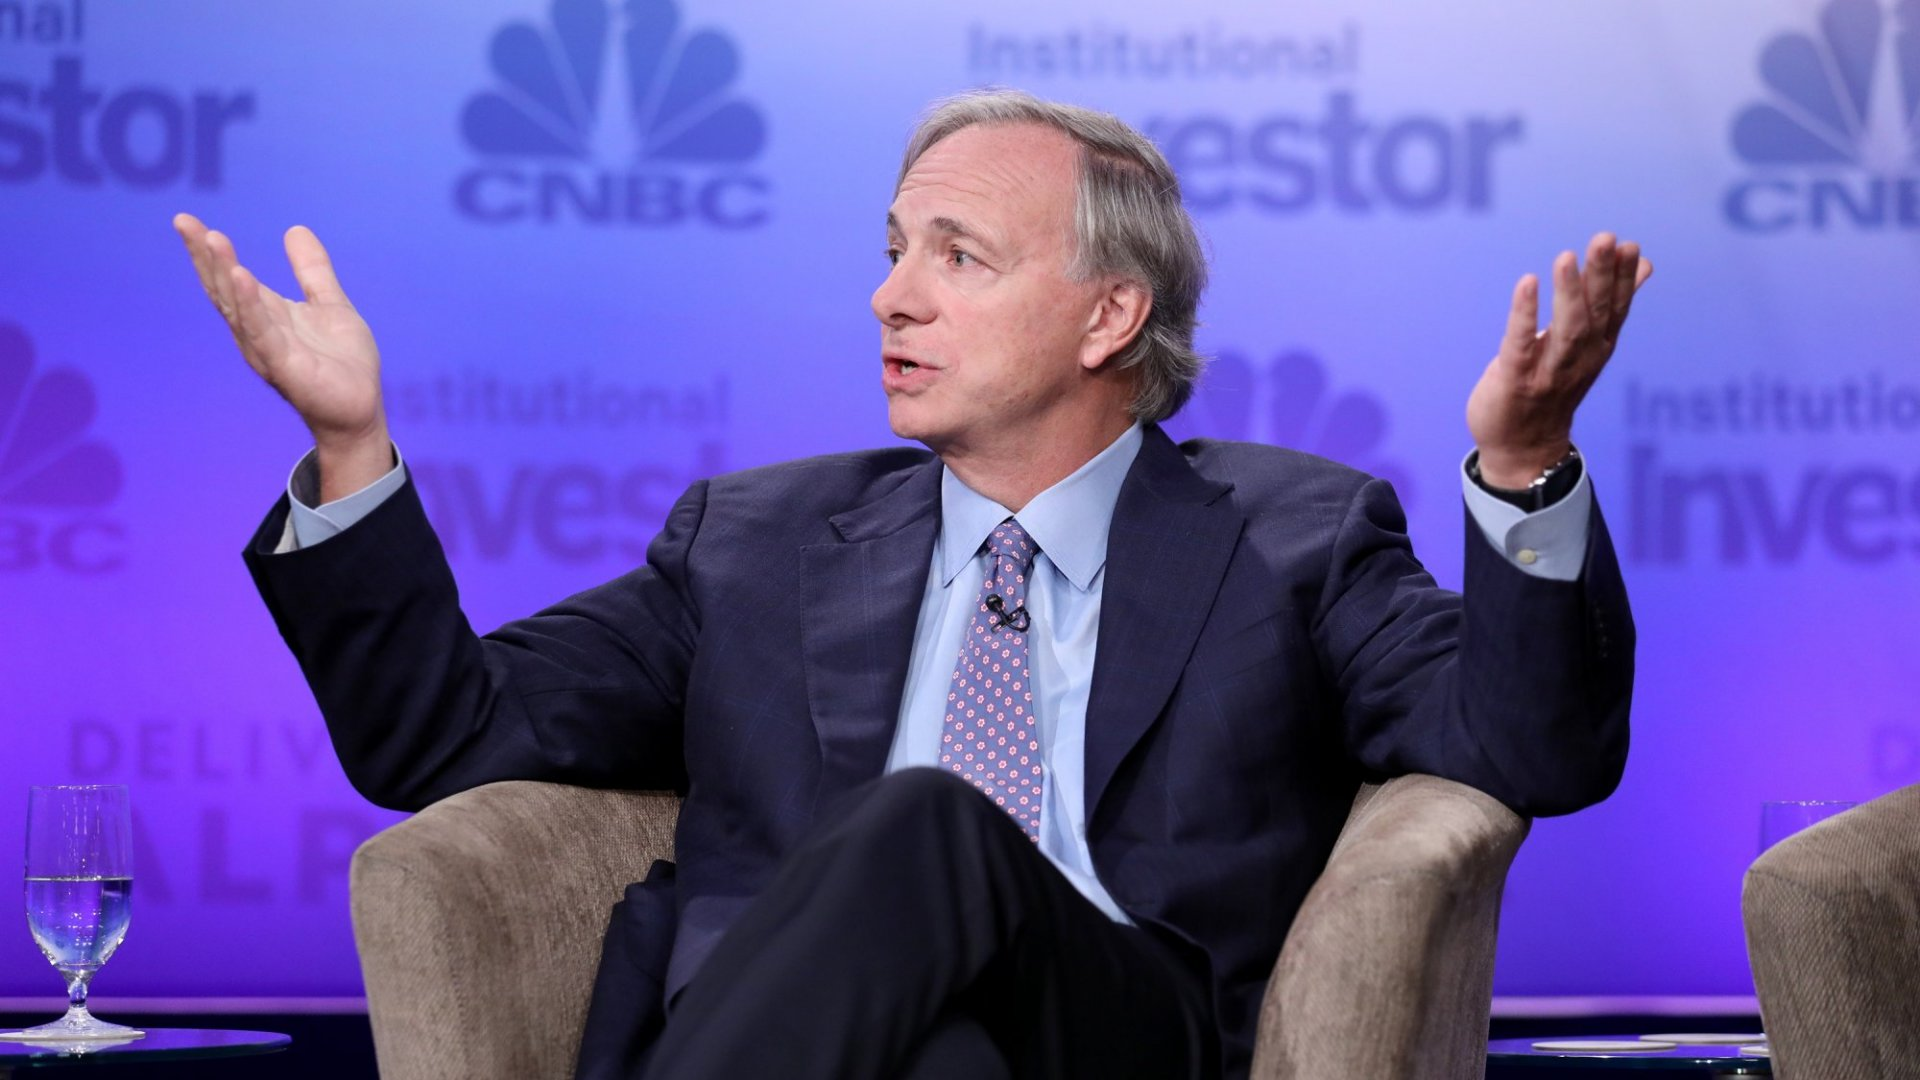 Billionaire Investor Ray Dalio Recently Shared Some Unconventional Career Advice on Reddit. Here Are the 2 Major Takeaways